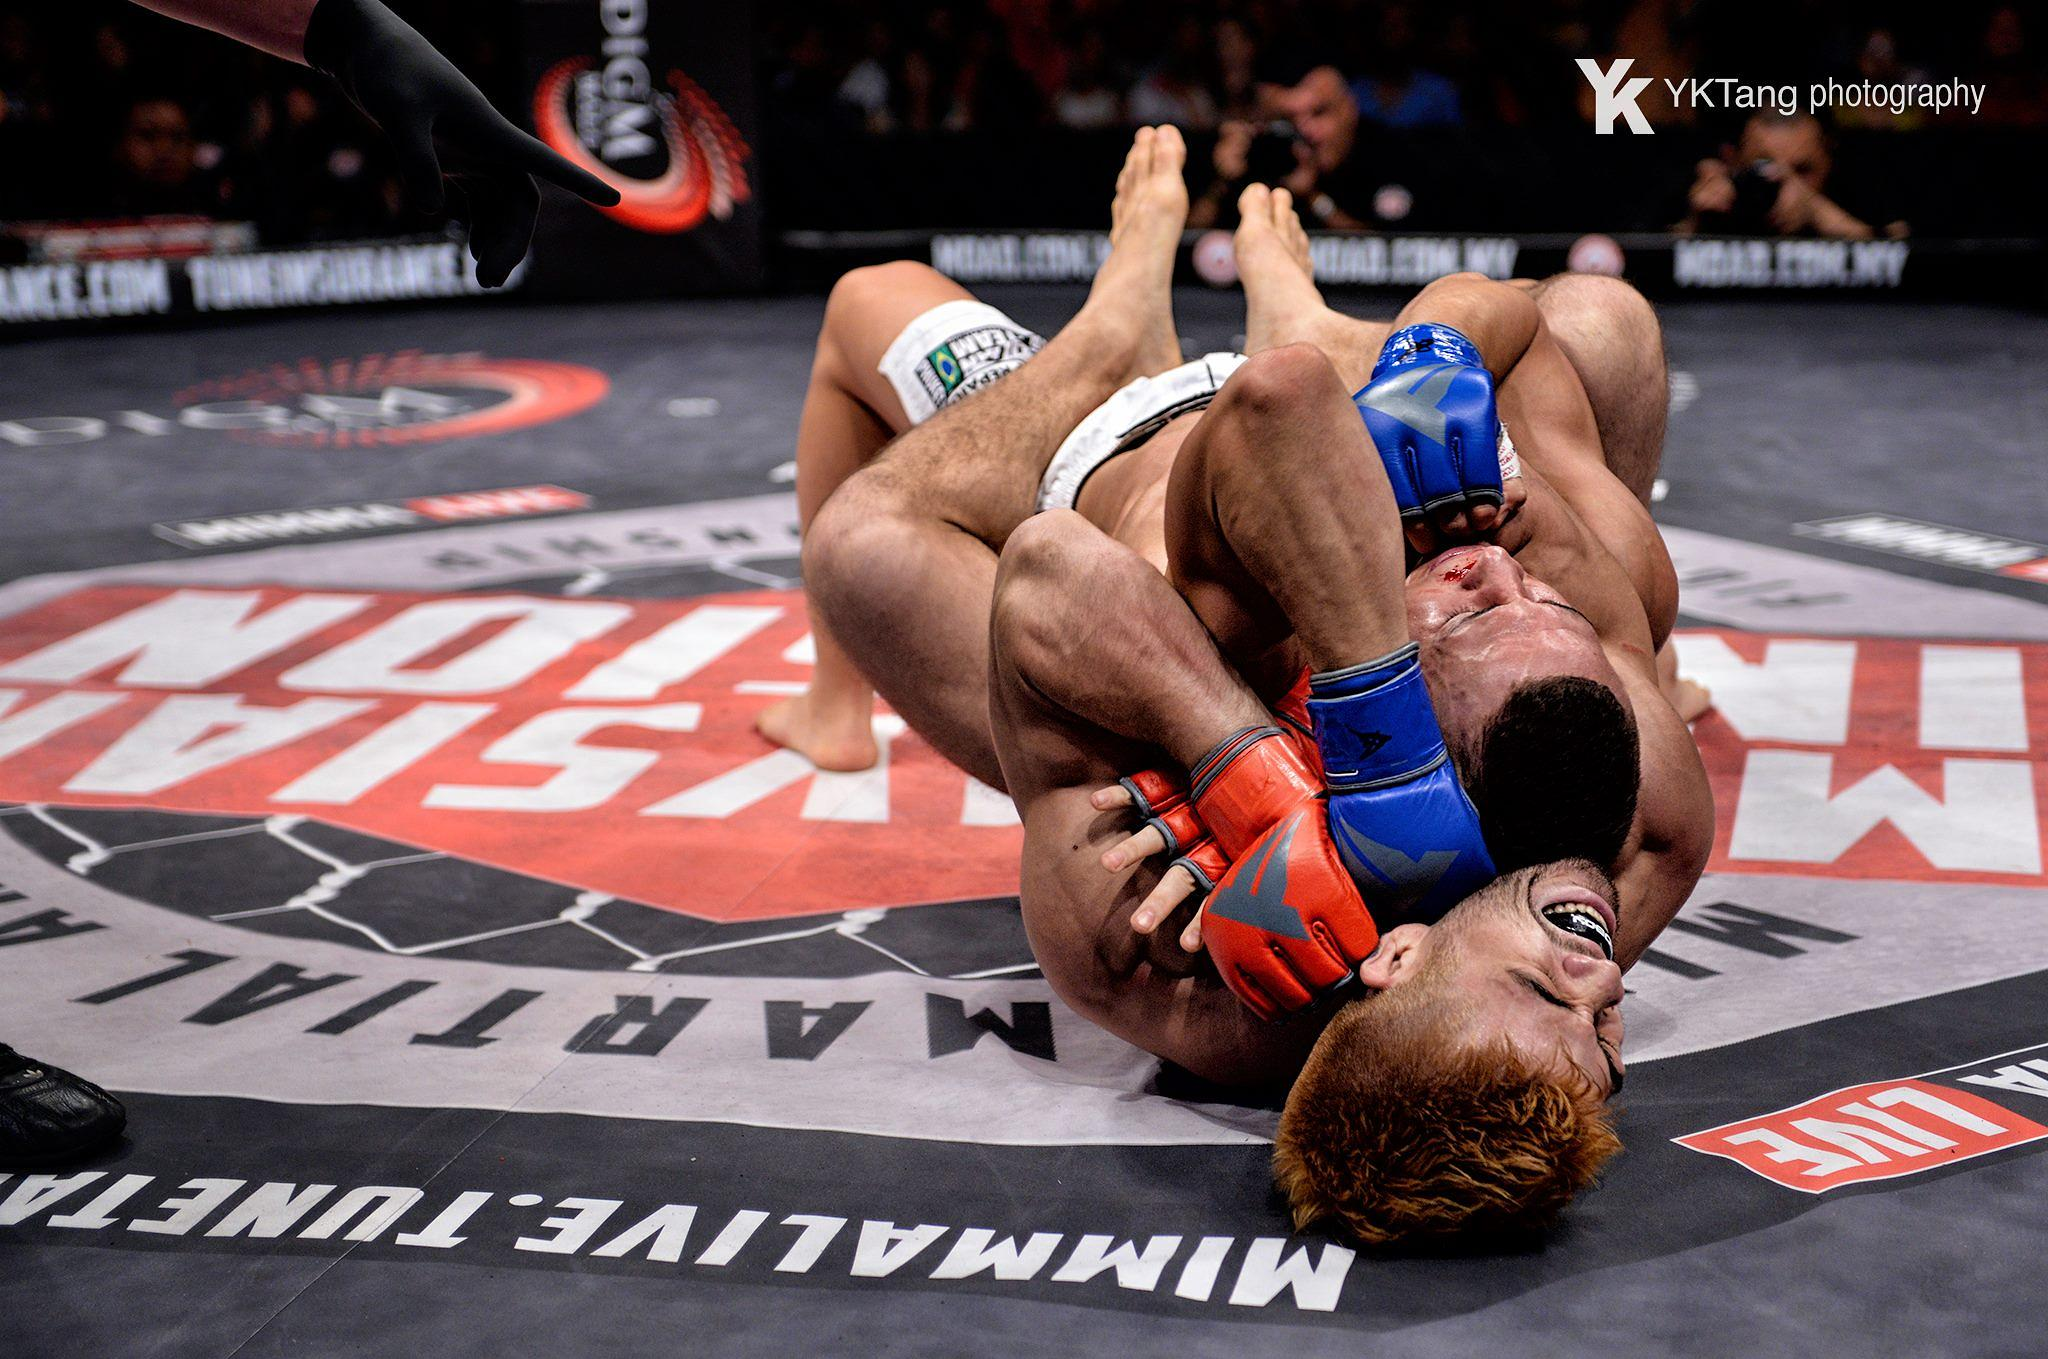 Malaysian Invasion Mixed Martial Arts Professional Fight by yktangphotography